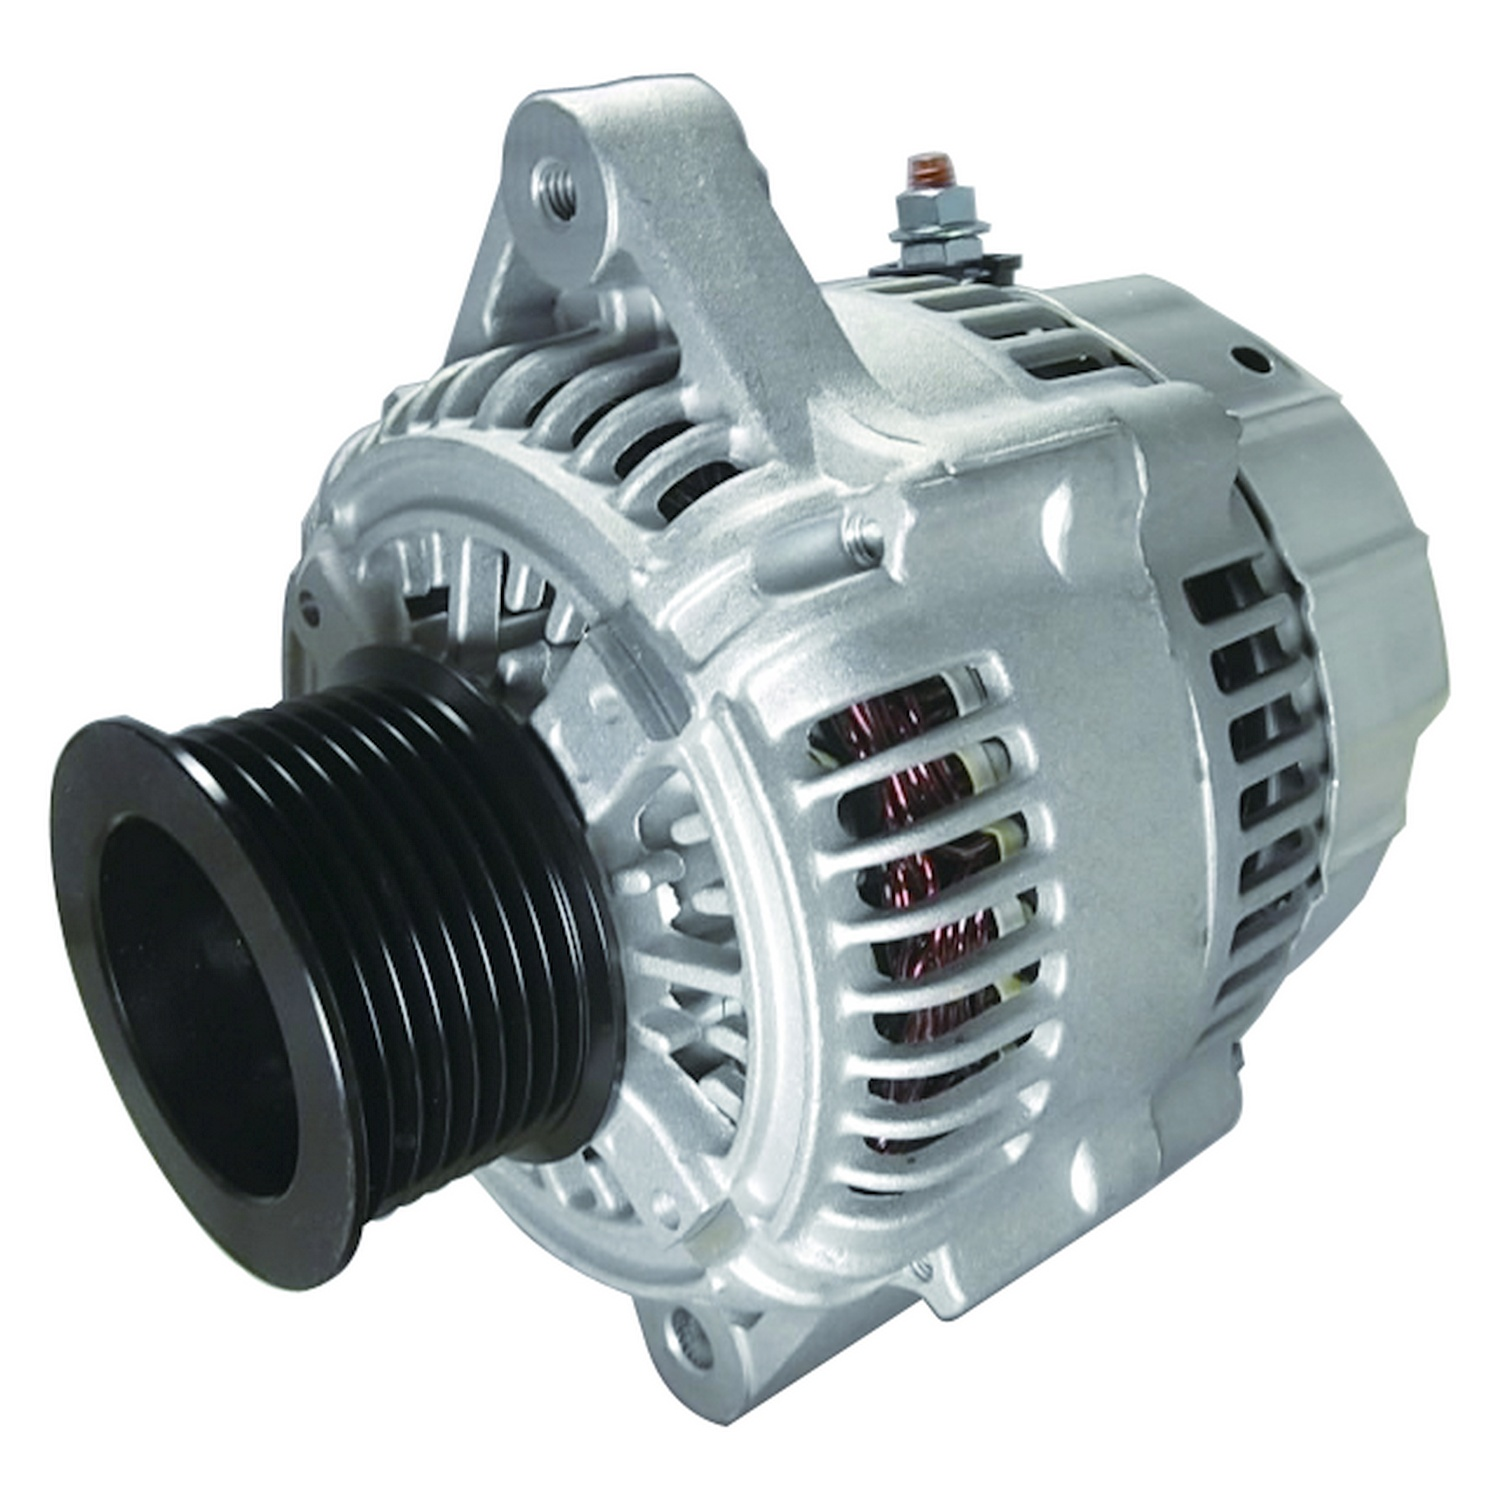 Alternator-Denso IR/IF 24V